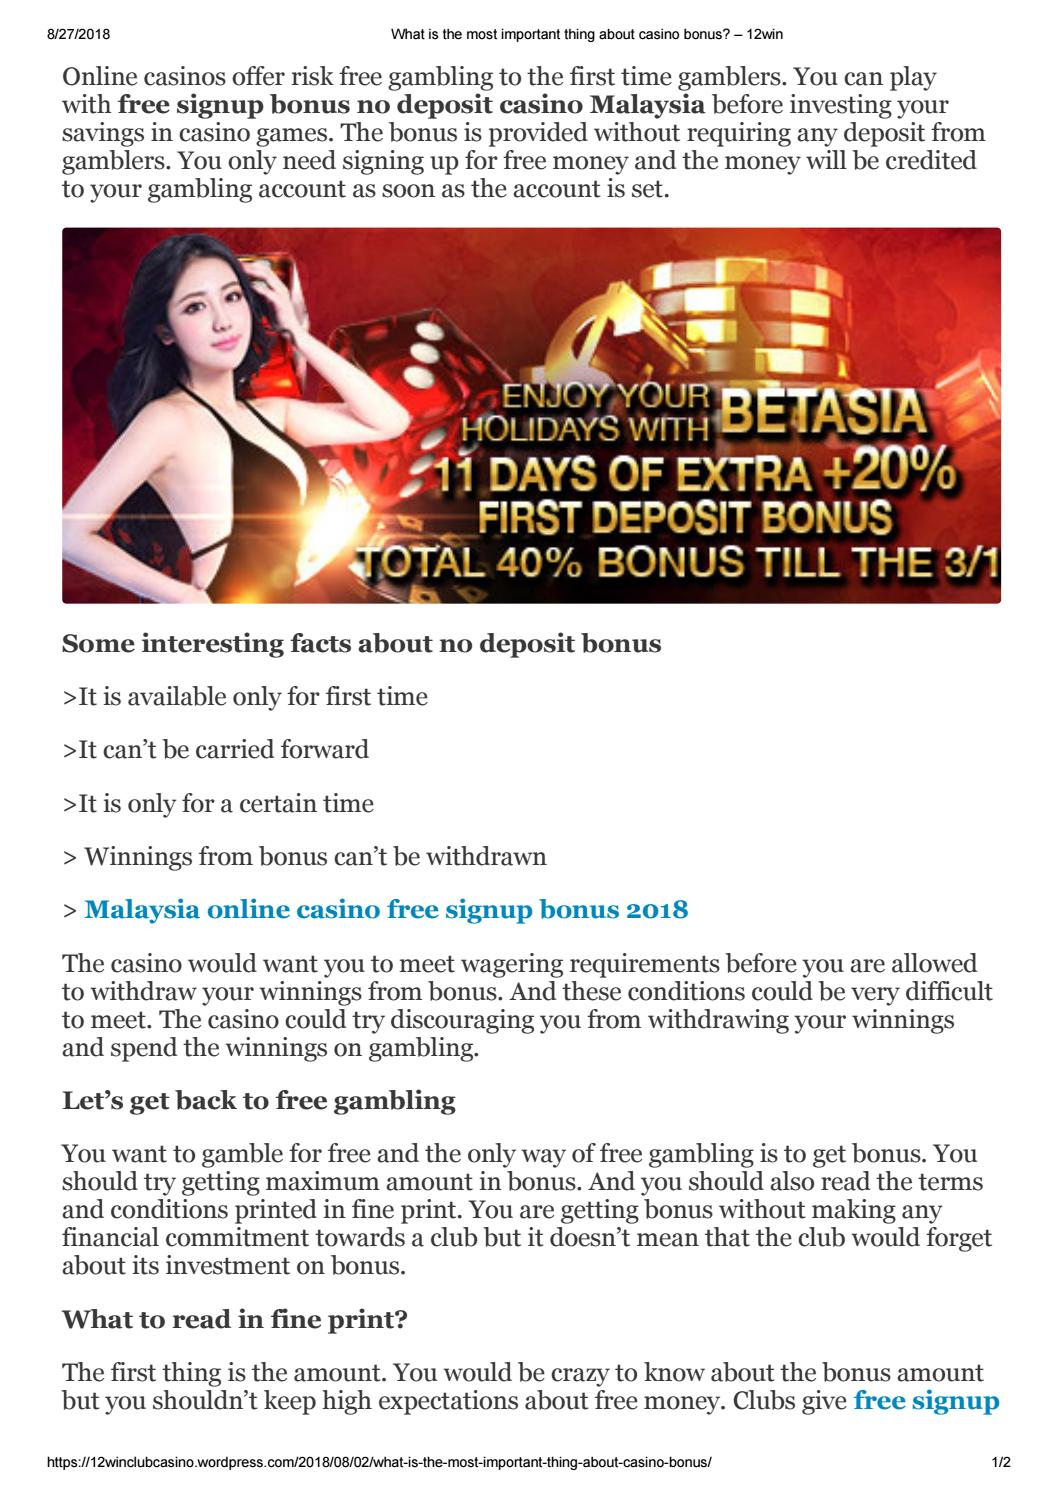 What Is The Most Important Thing About Casino Bonus By 12win Club Issuu